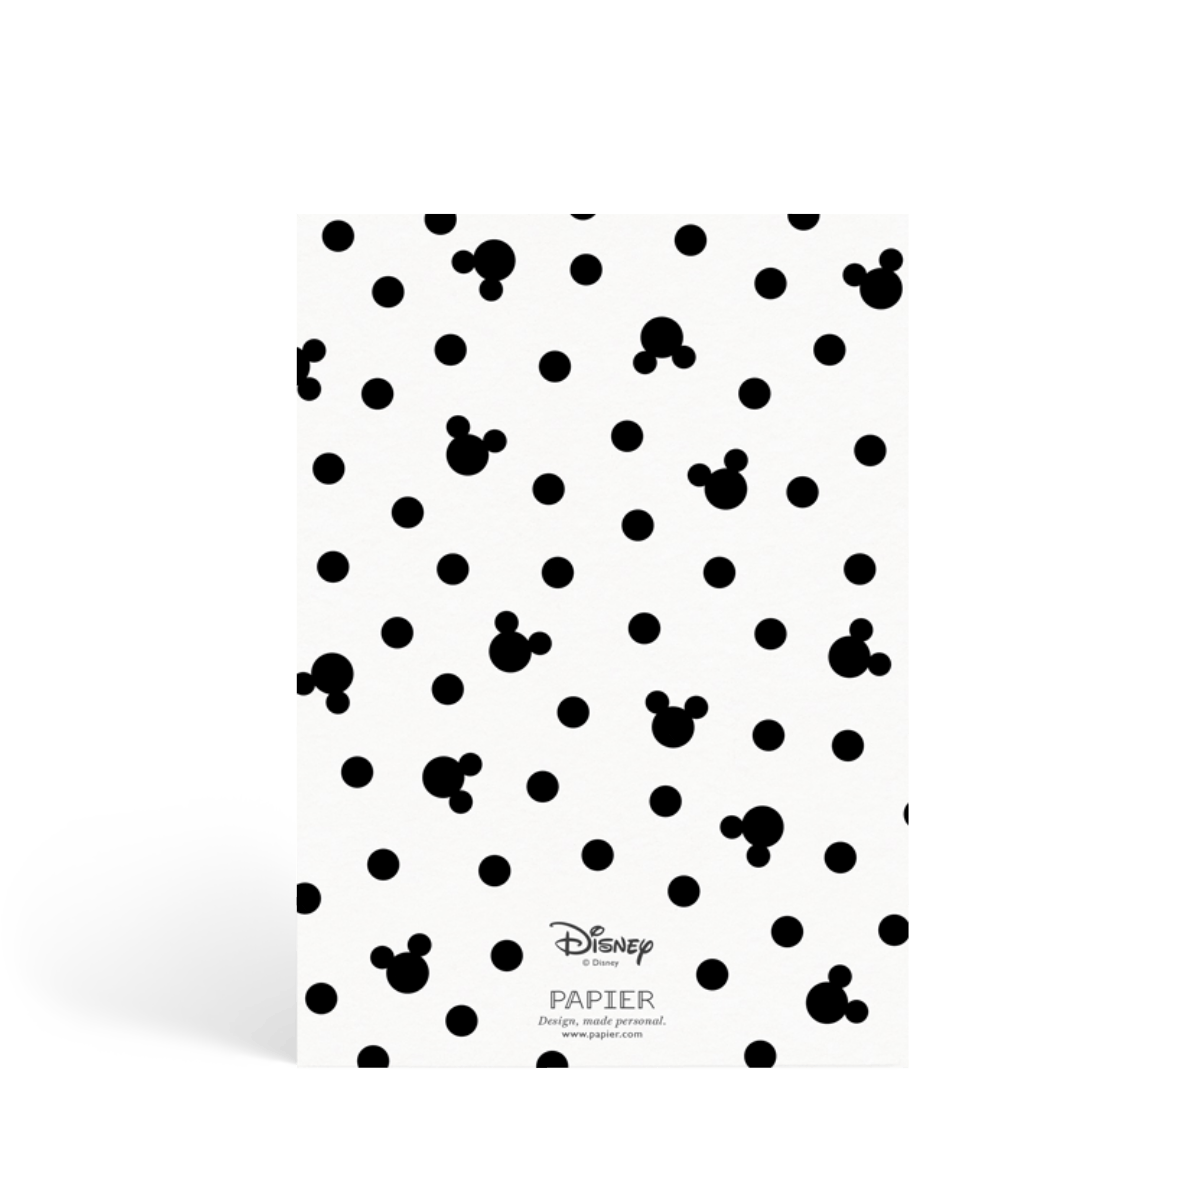 Https%3a%2f%2fwww.papier.com%2fproduct image%2f72910%2f5%2fpolka dot mickey mouse 17173 back 1556042391.png?ixlib=rb 1.1